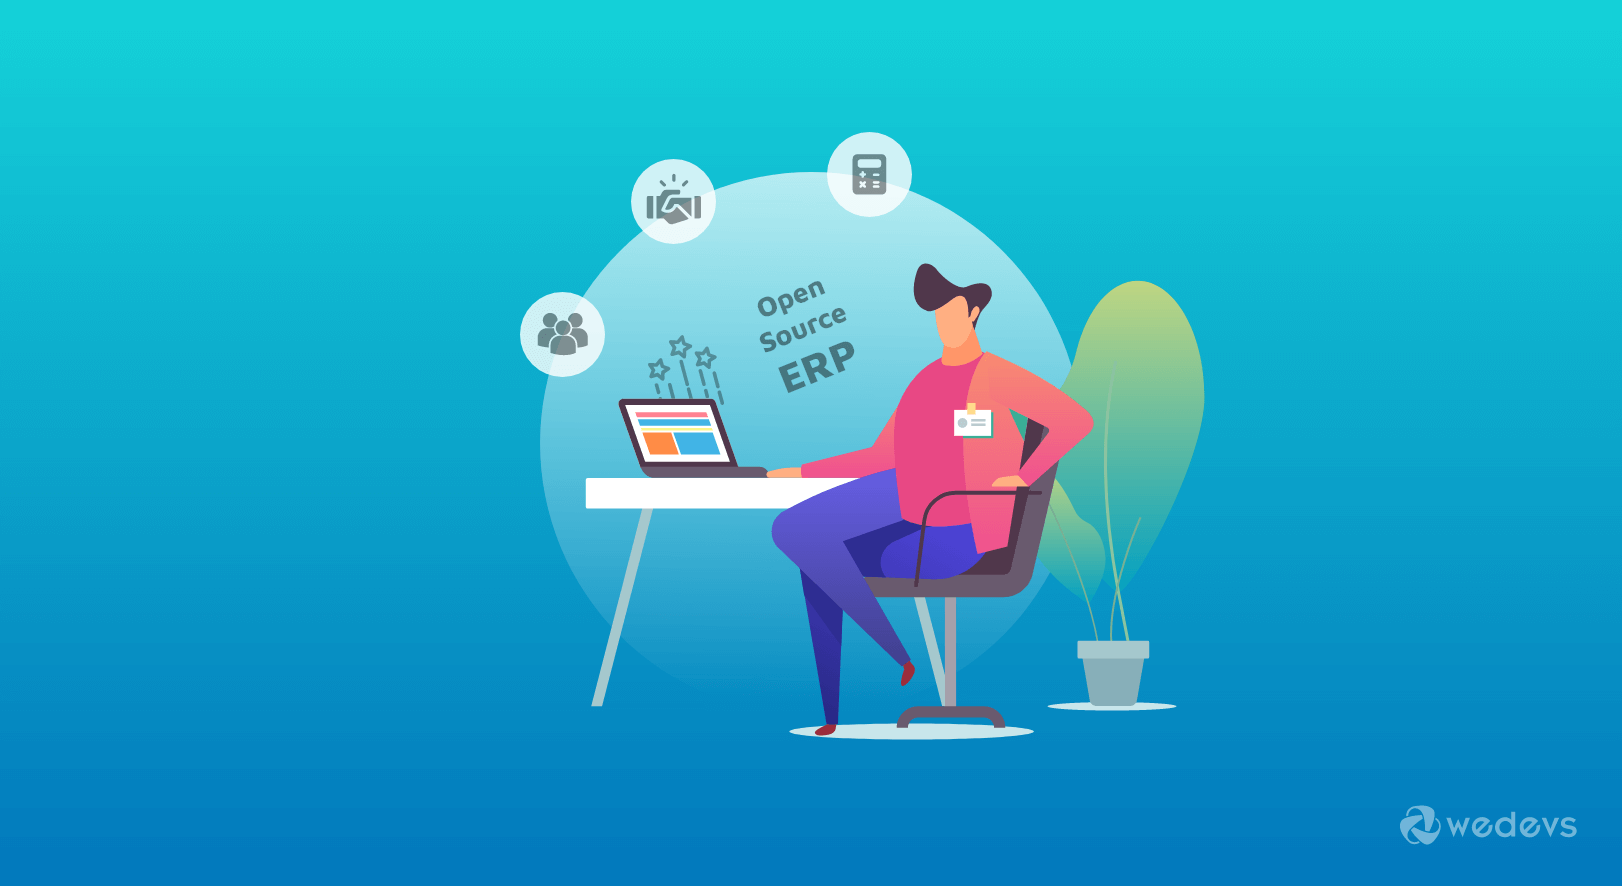 5 Best Open Source ERP System You Should Consider in 2021